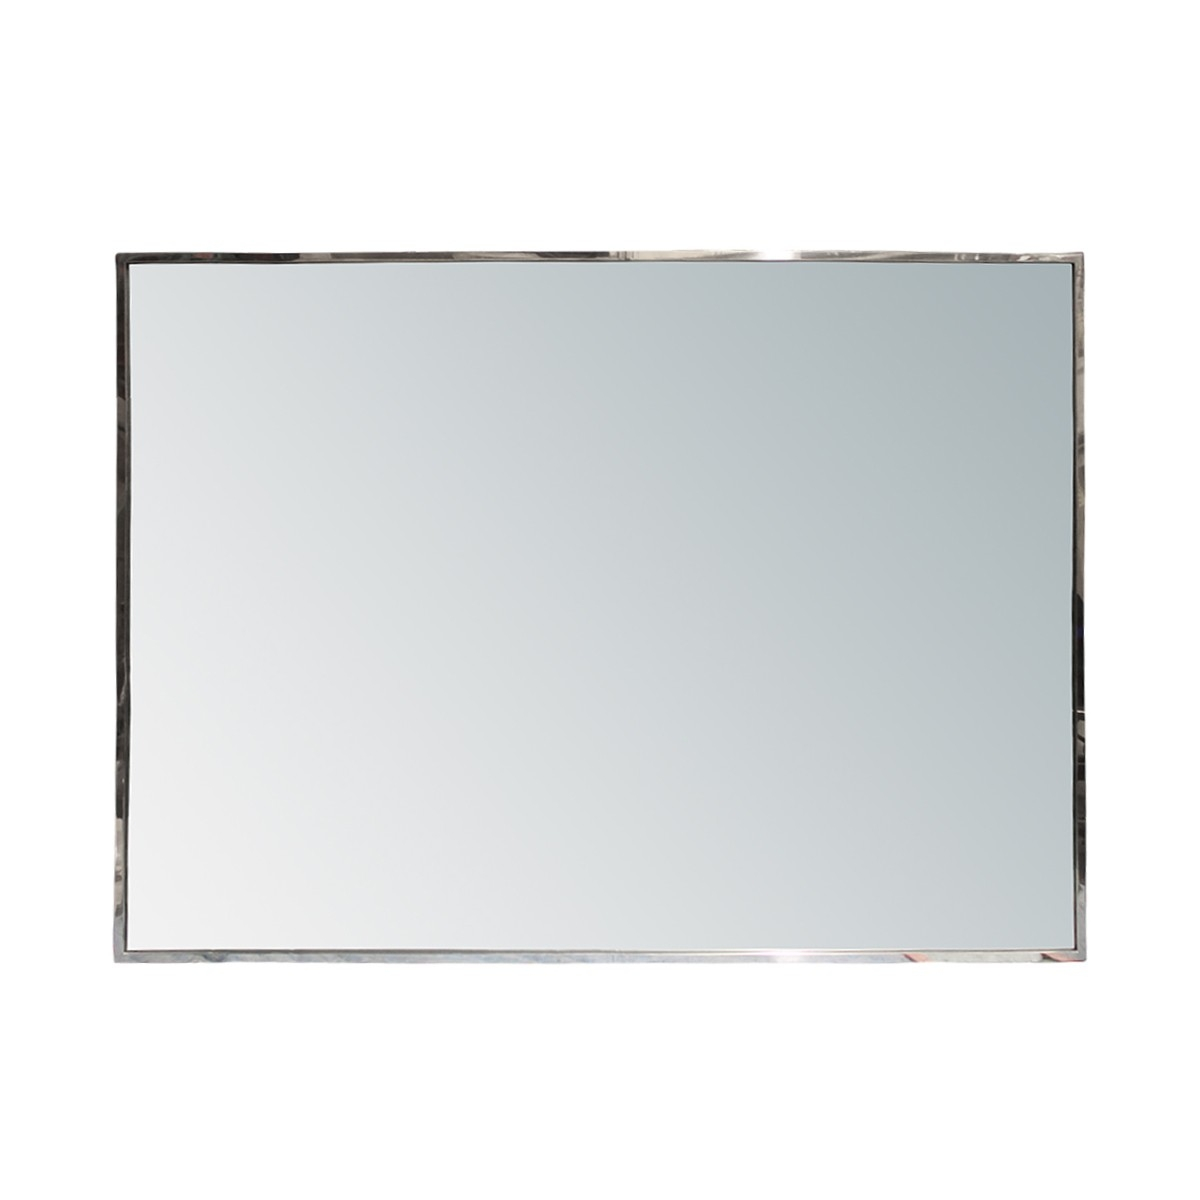 Modest Ideas Metal Framed Wall Mirror Sumptuous Metal Framed For Landscape Wall Mirror (View 15 of 15)